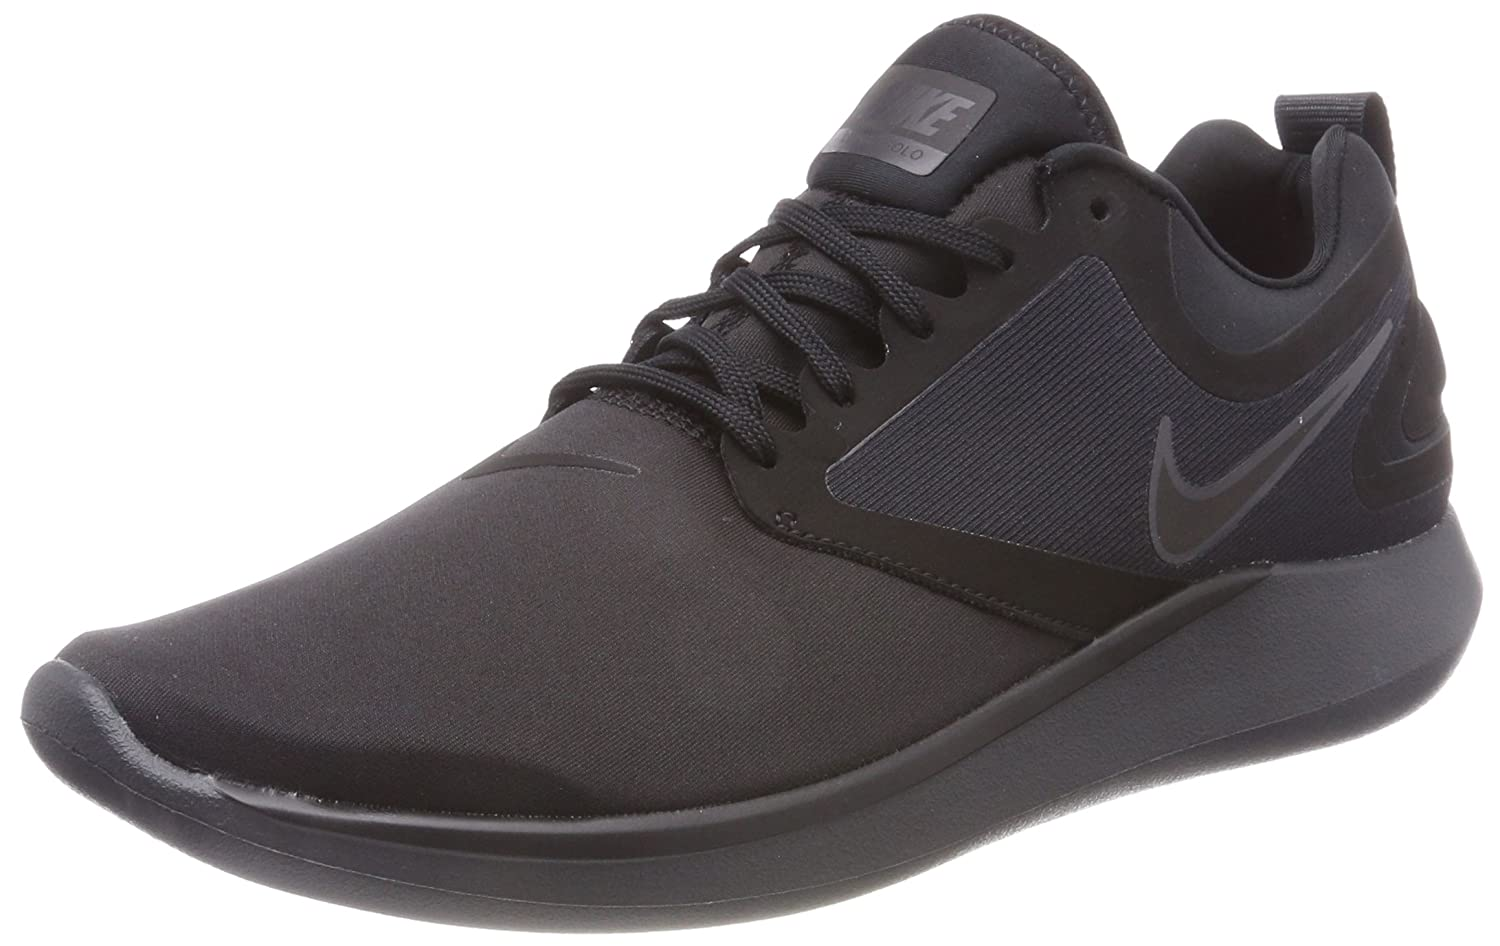 low priced 461da dfeb6 ... Nike Lunarsolo, Zapatillas de Trail Running para Hombre 41 EUNegro  (Black sold worldwide 441cc ...